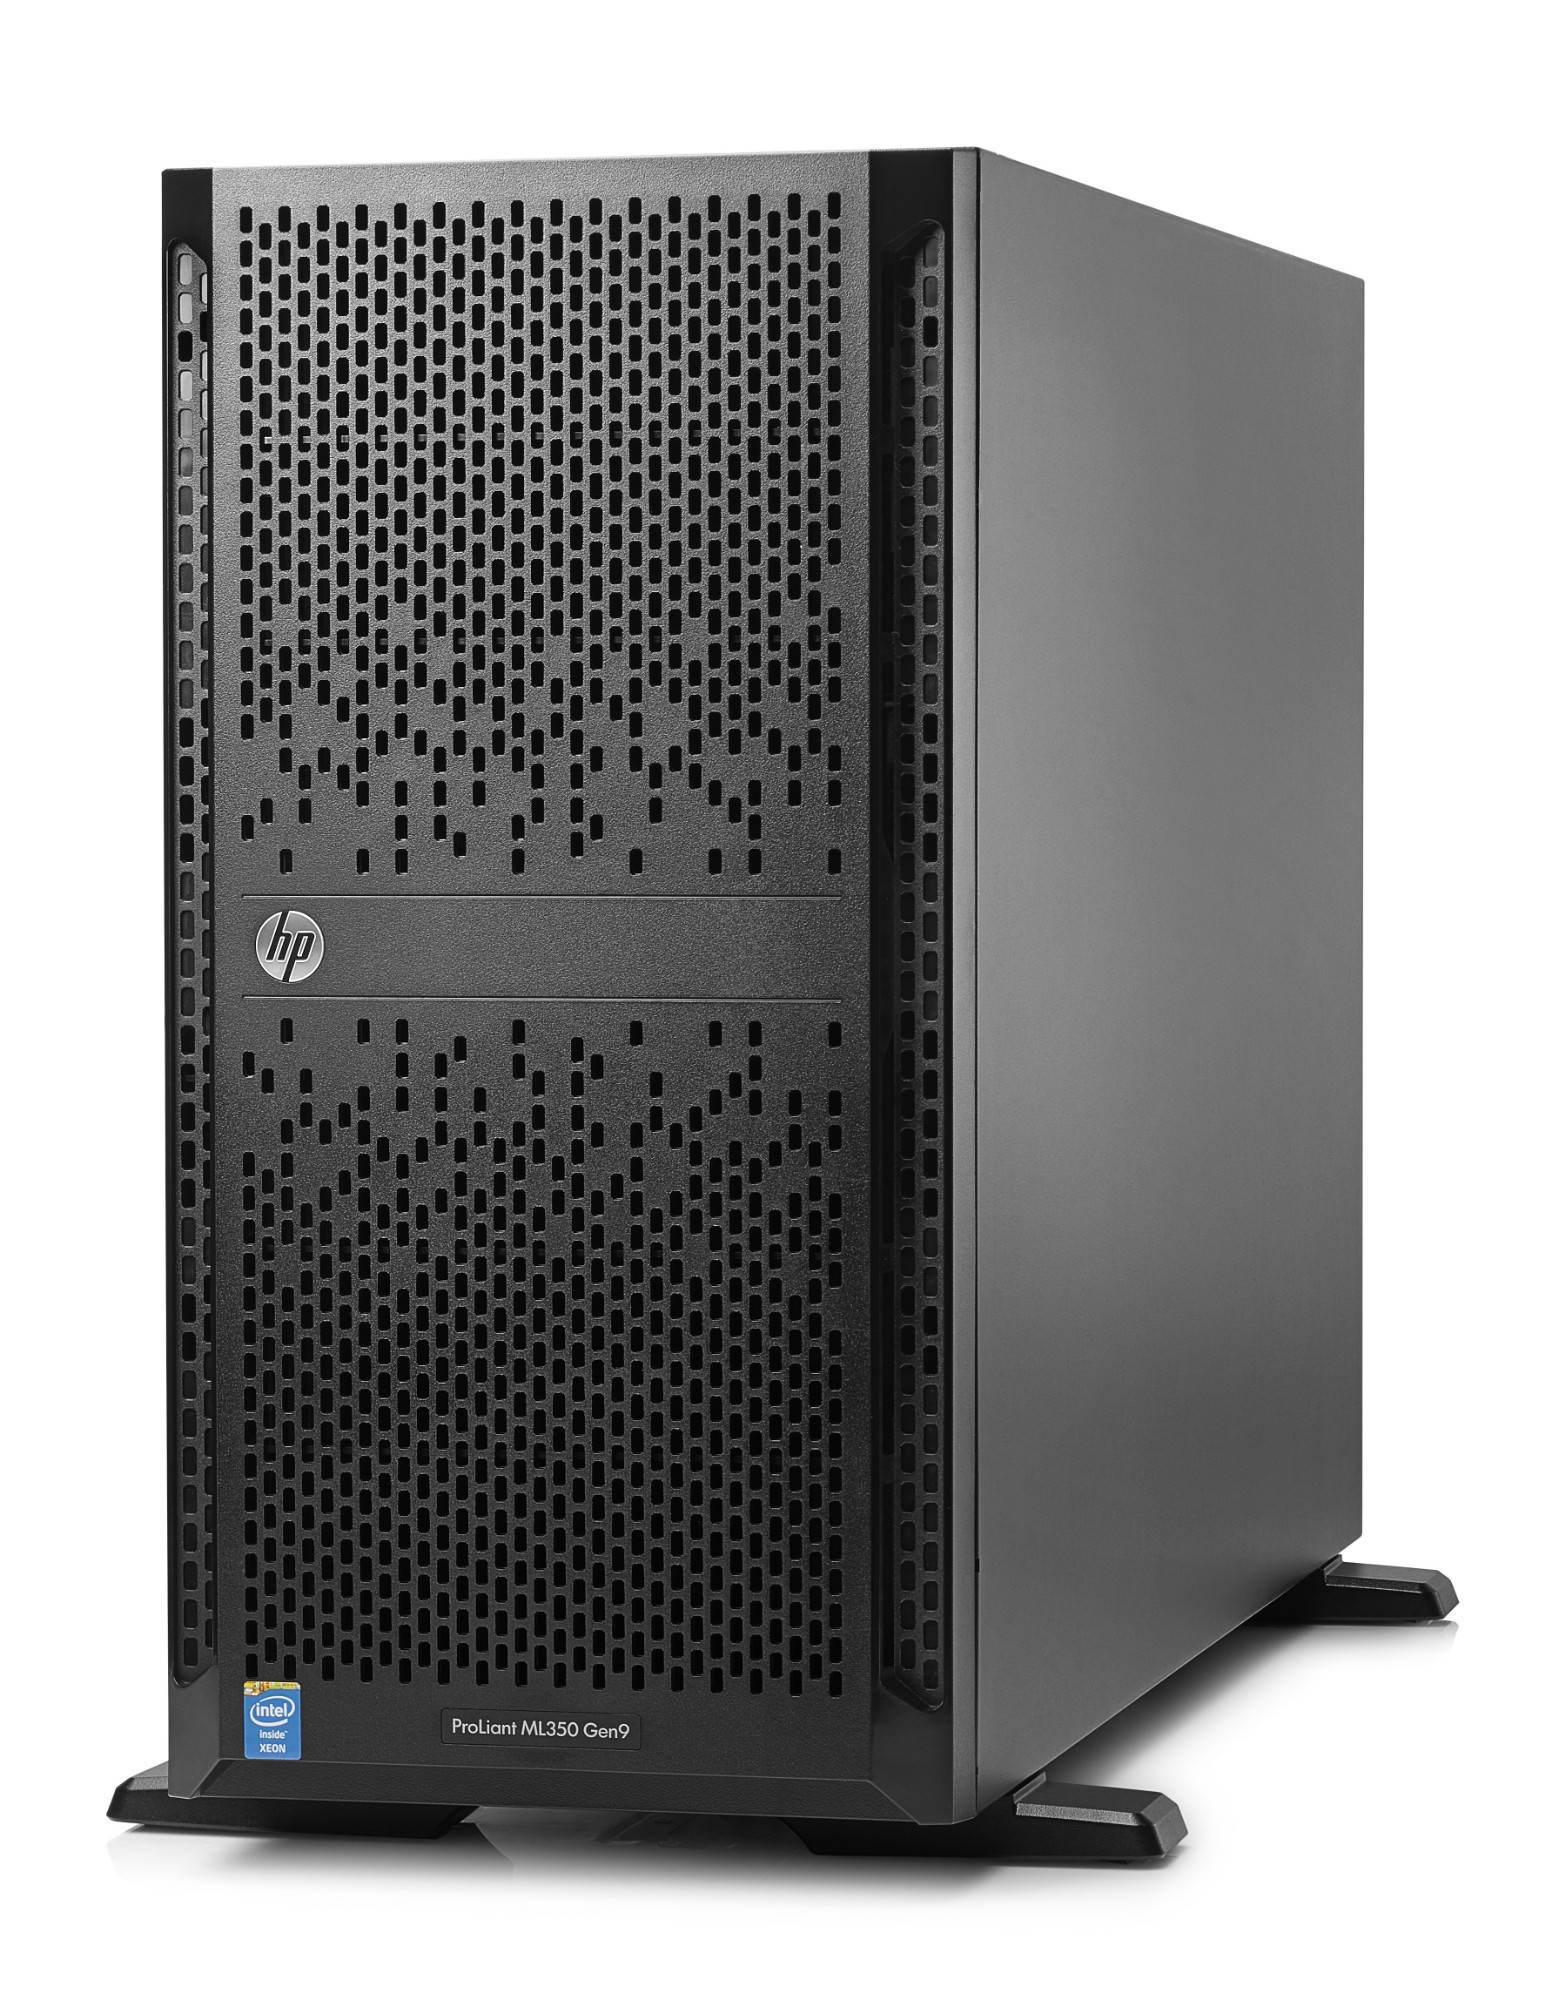 hewlett packard enterprise proliant ml350 gen9 0 in distributor wholesale stock for resellers. Black Bedroom Furniture Sets. Home Design Ideas